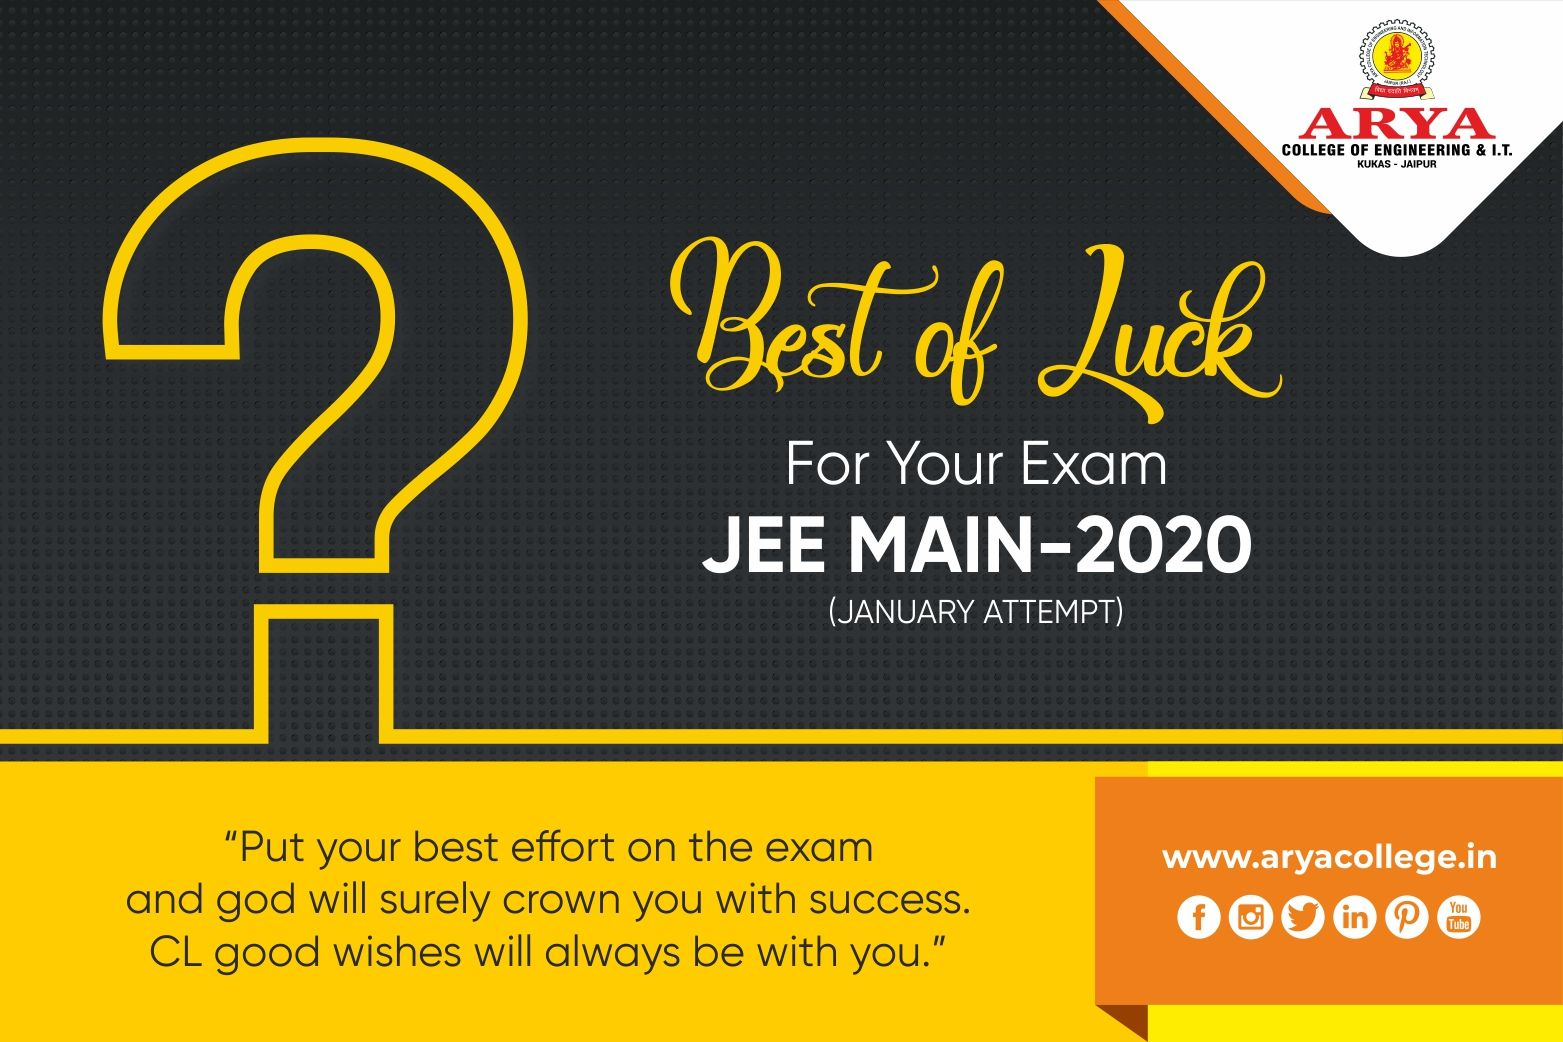 Best Of Luck For Your Exam Jee Main 2020 In 2020 Exam Luck Engineering